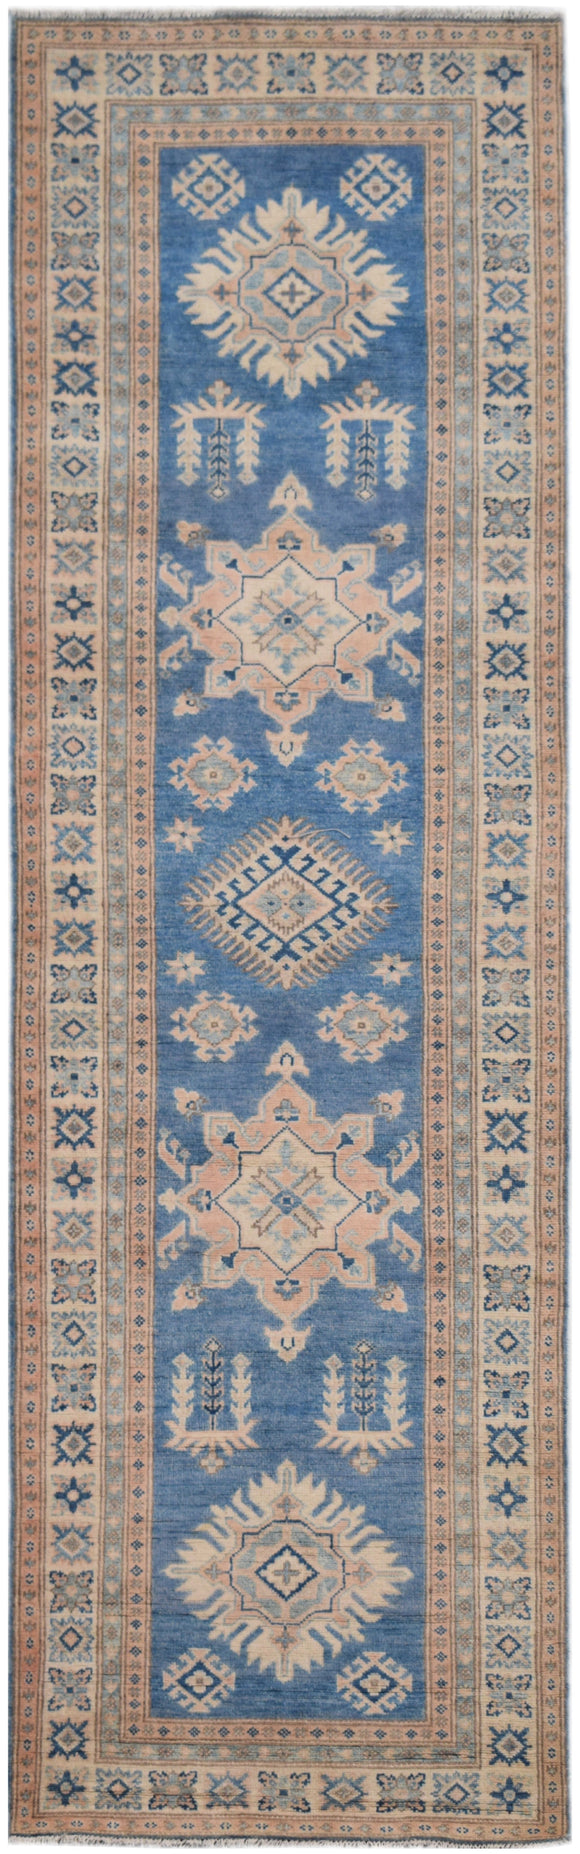 Handmade Sultan Collection Hallway Runner | 289 x 76 cm | 9'6